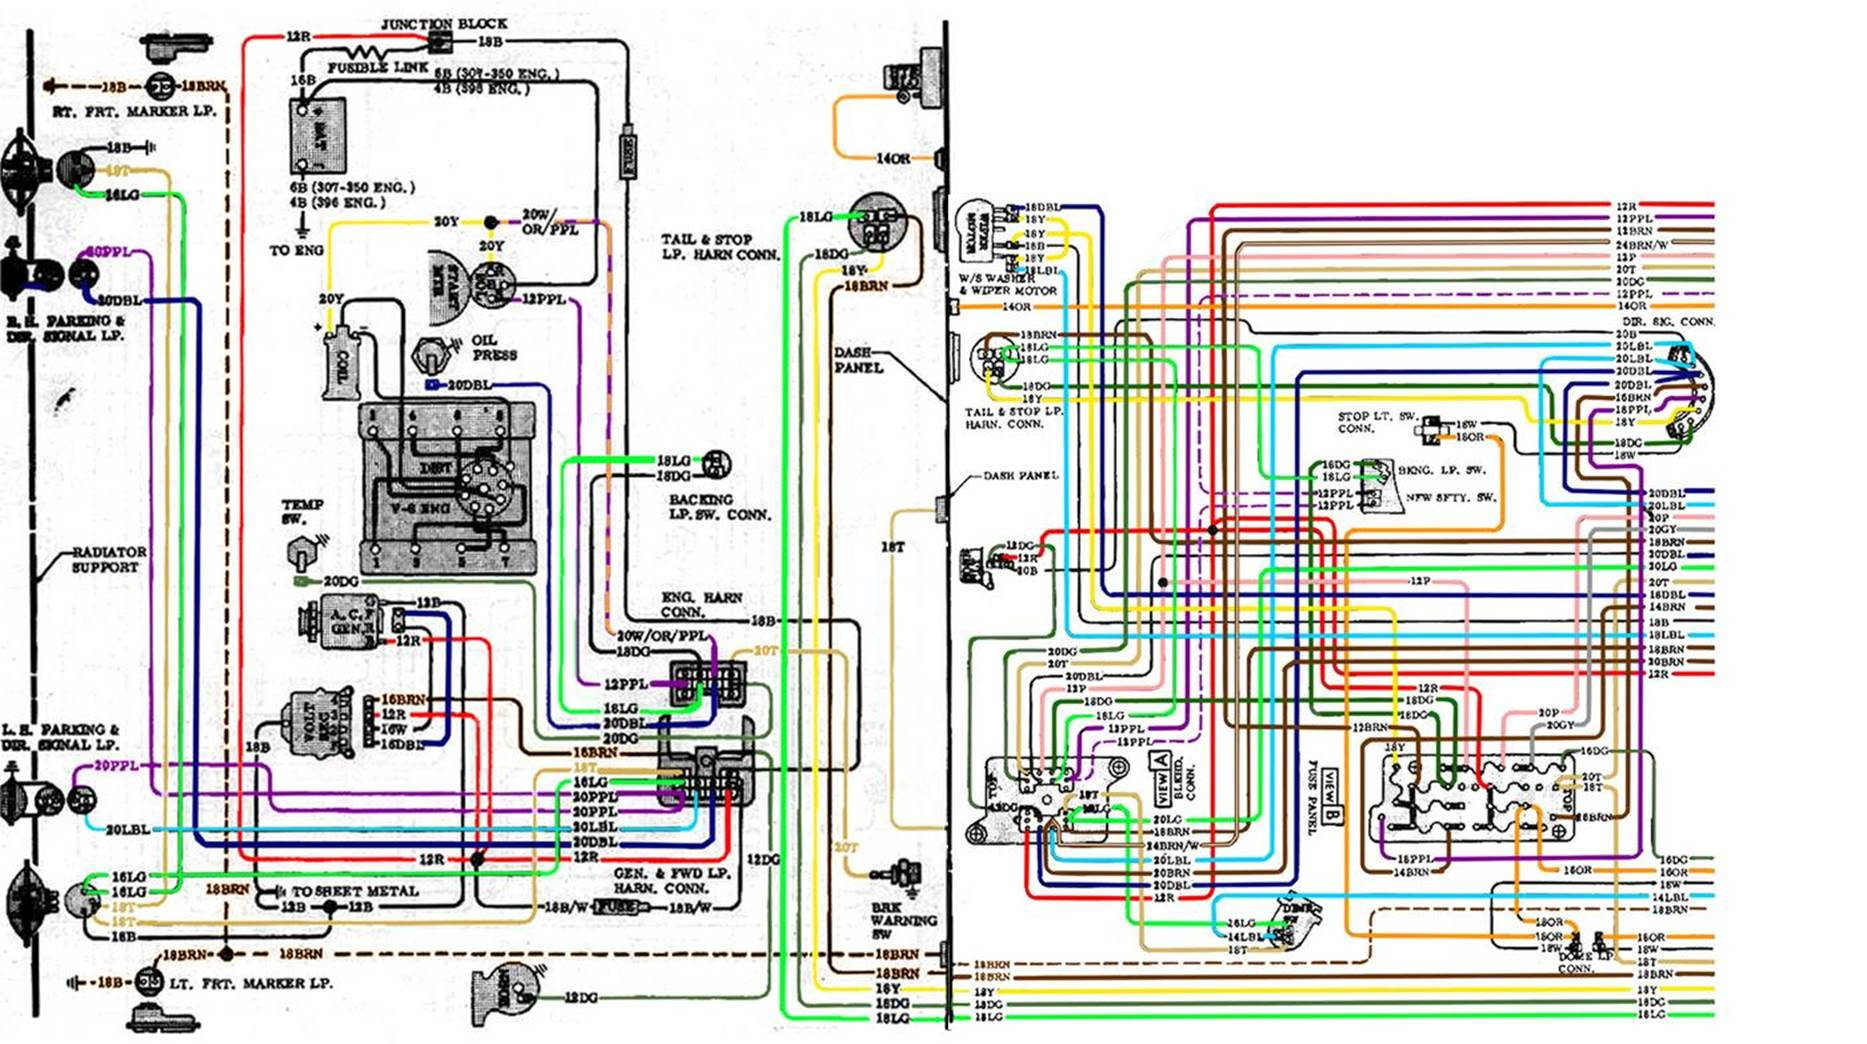 67 72 chevy wiring diagram rh outintheshop com 68 Chevy Pickup Wiring Schematic For chevrolet wiring schematics 2005 colorado